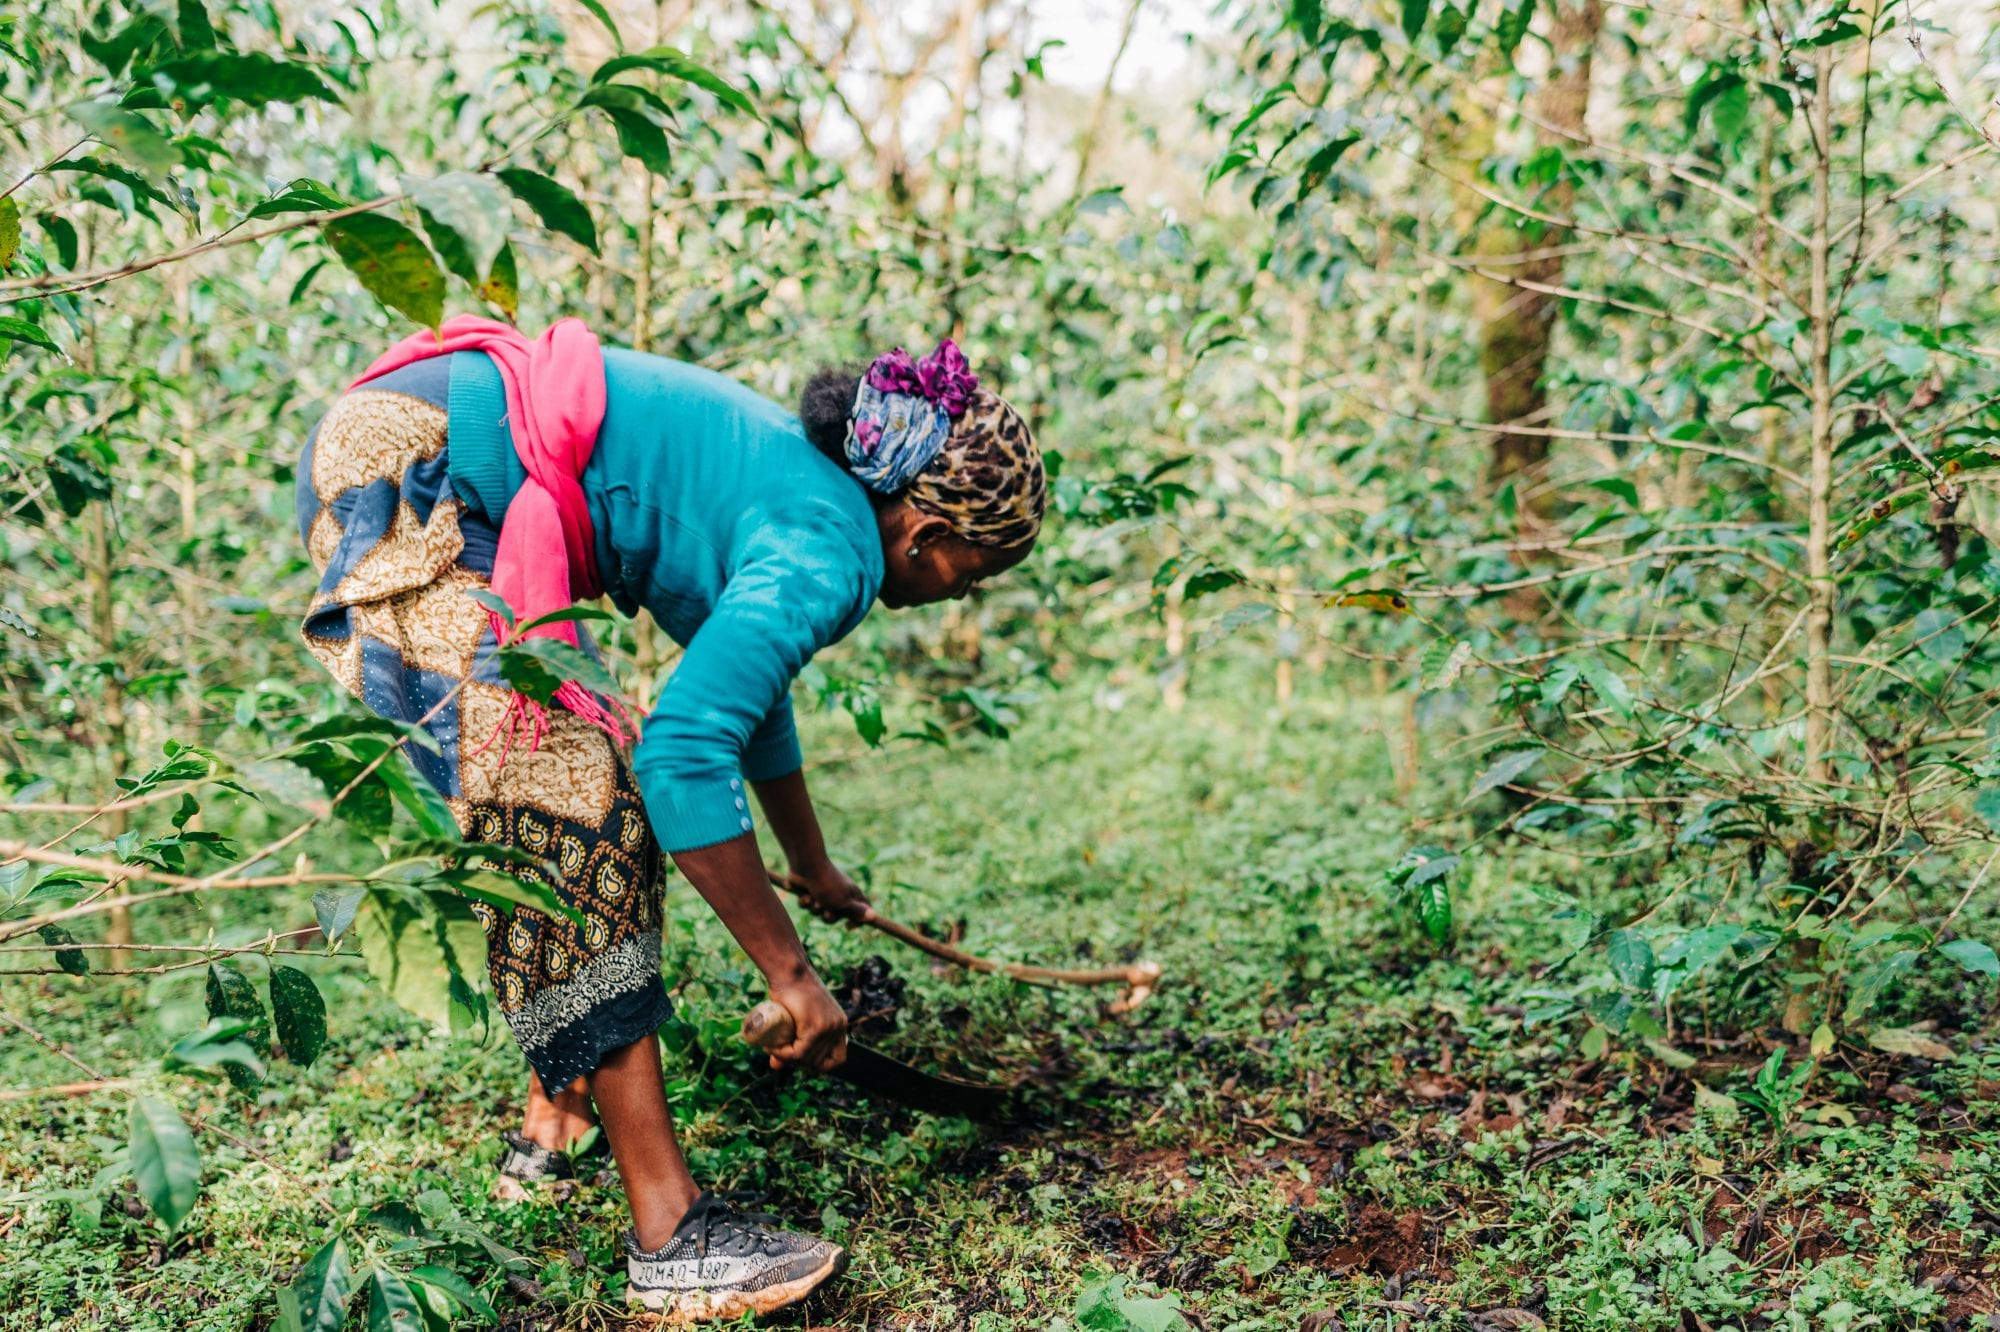 Lubaba tends to her coffee trees in western Ethiopia